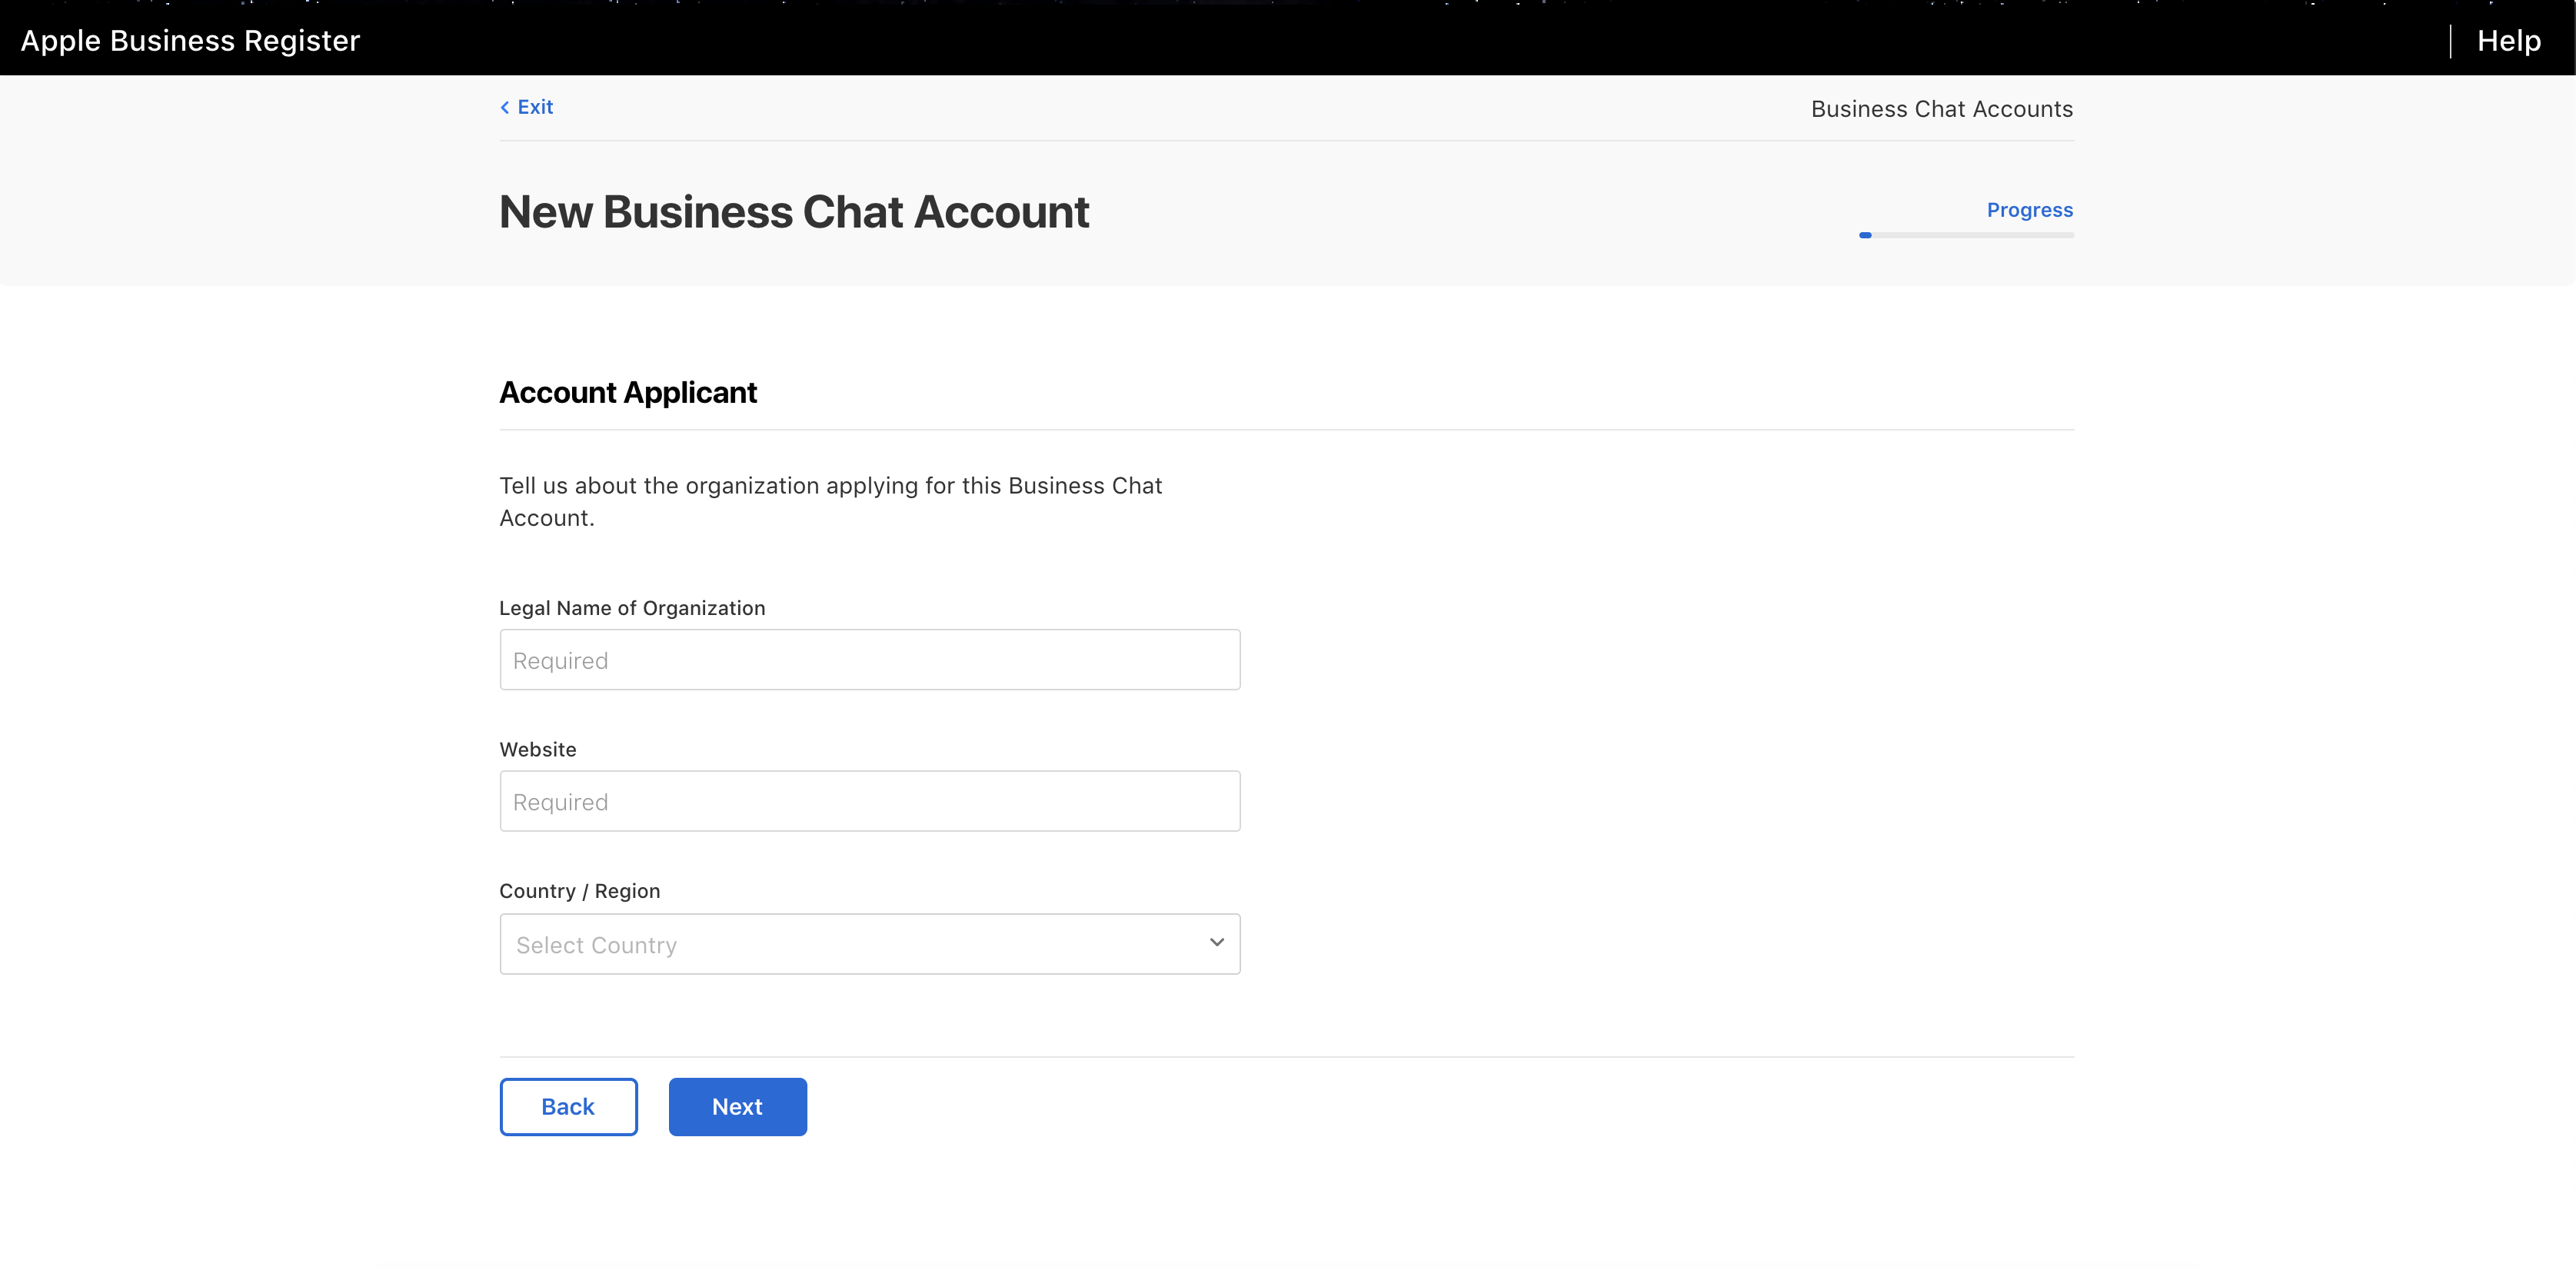 Business Chat account information